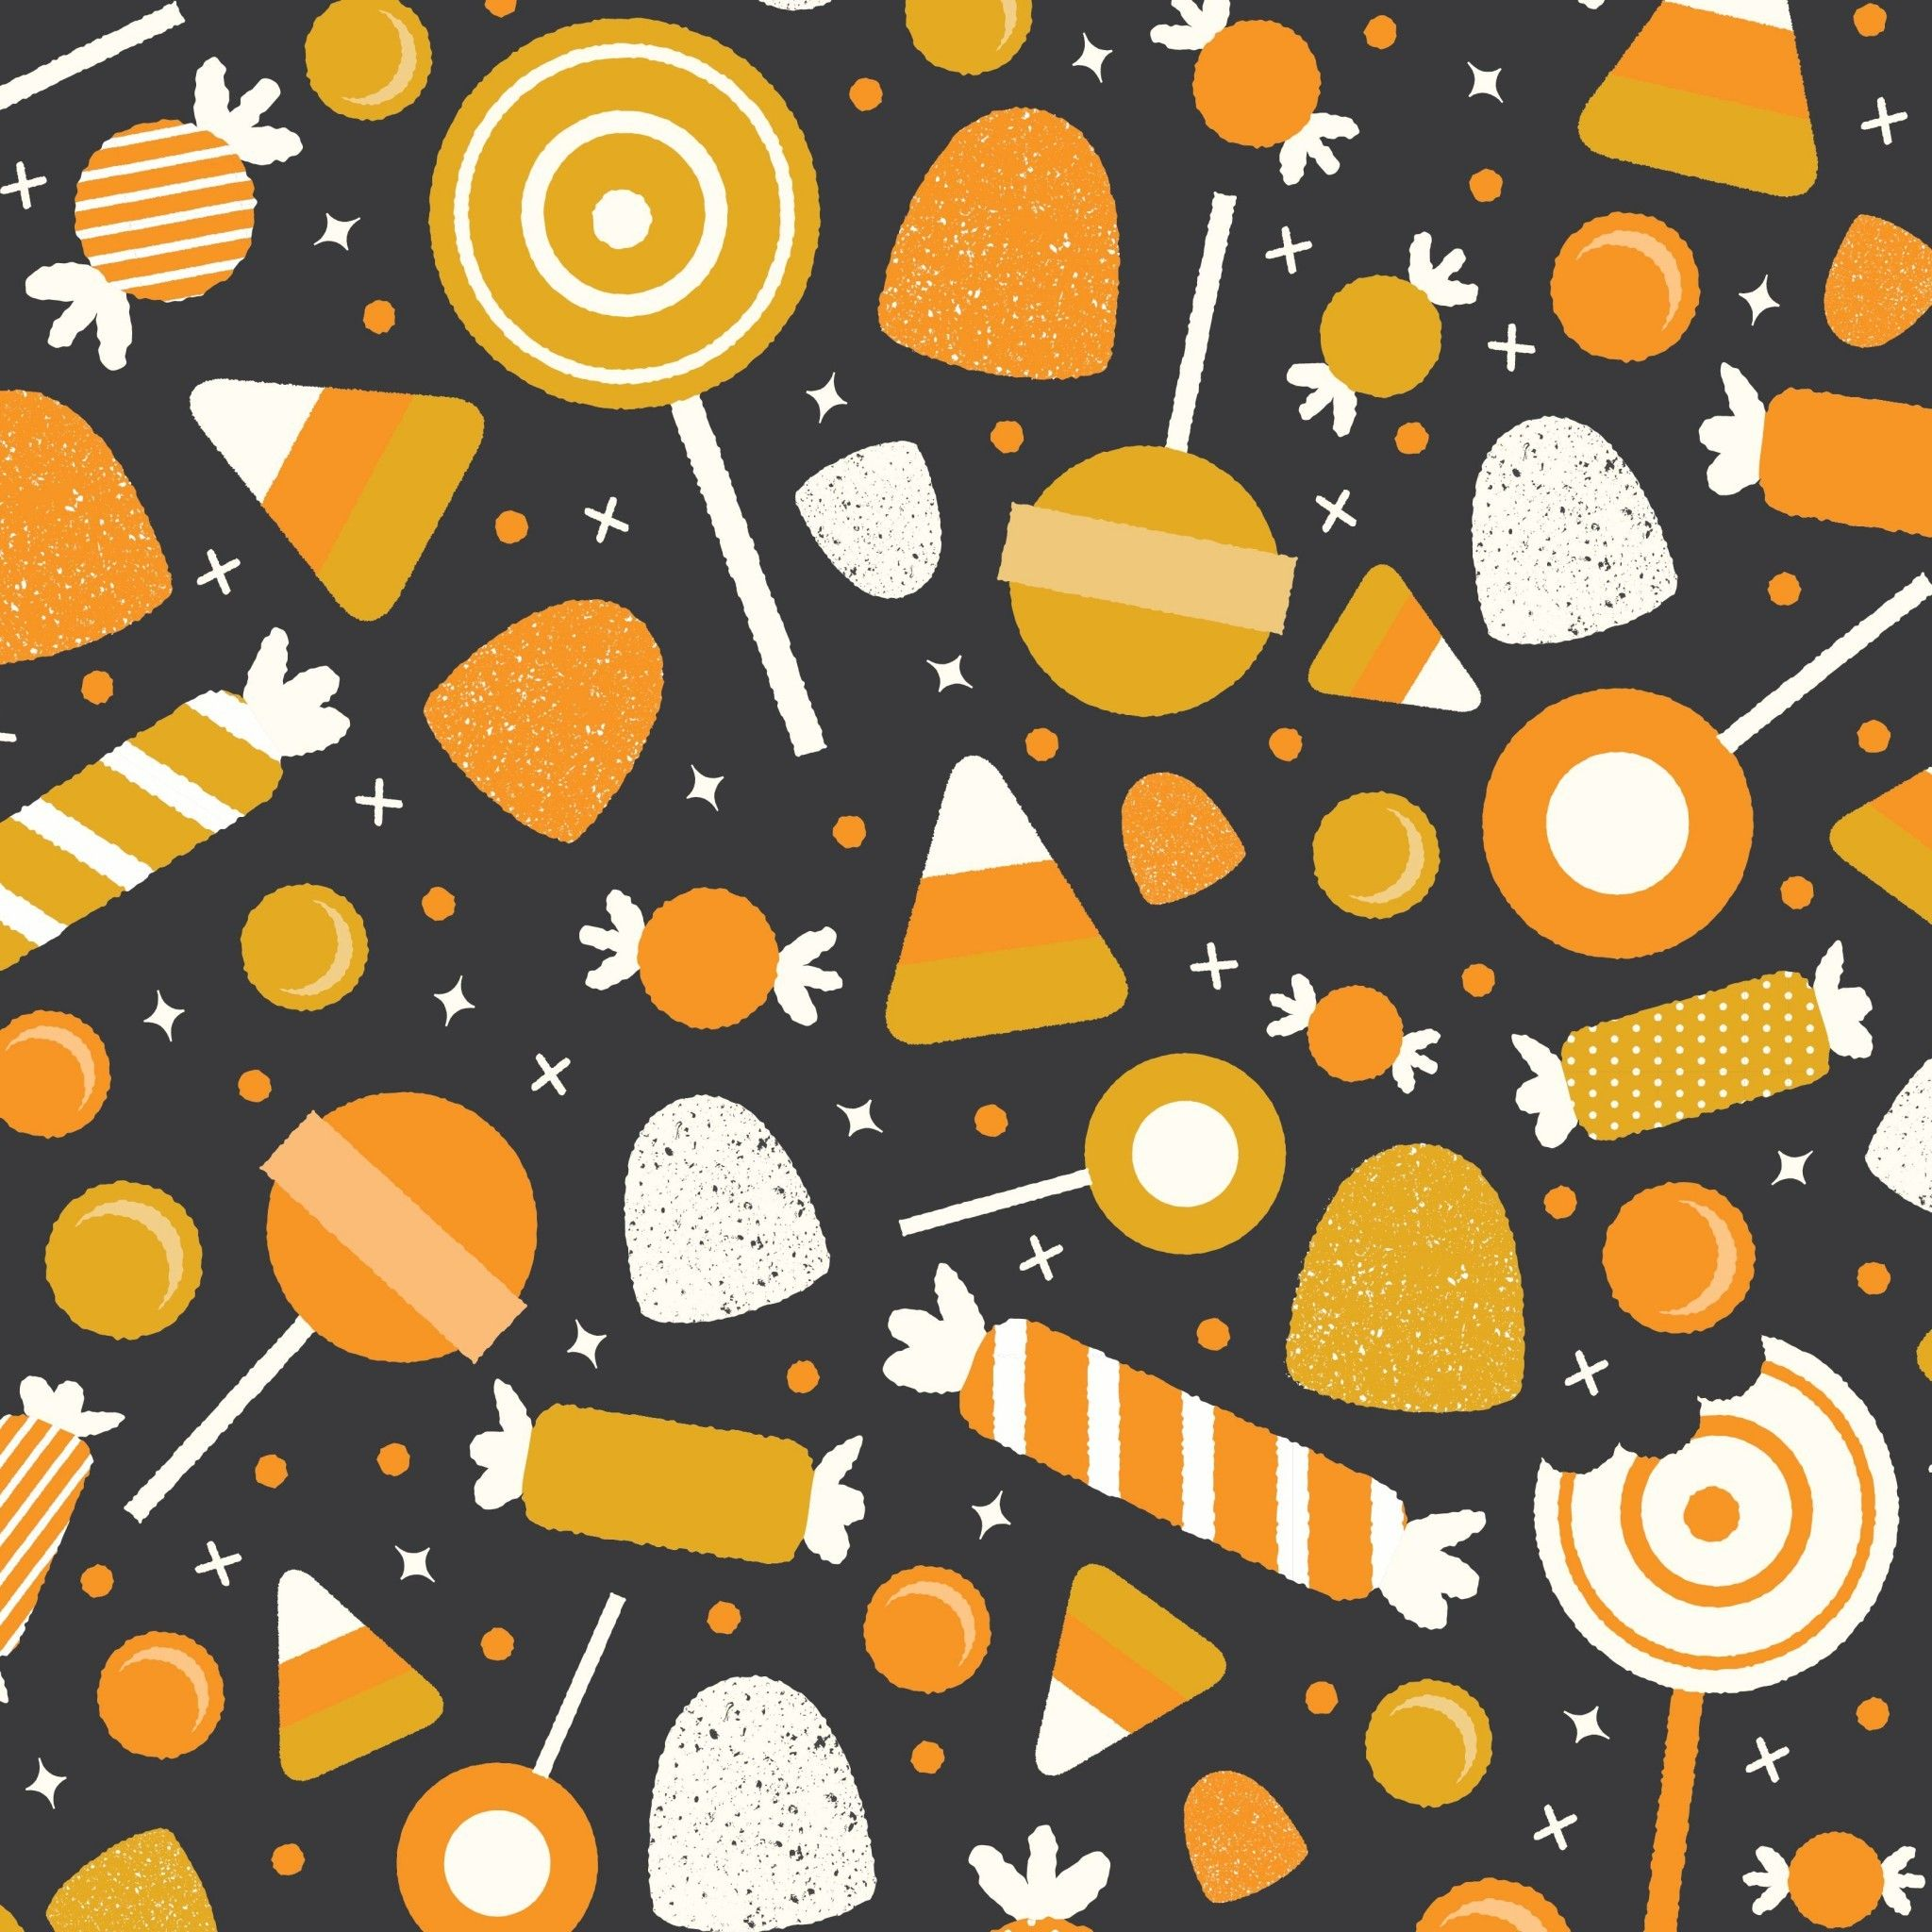 2048x2048 Halloween Candy Tap Image For More Fun Pattern Wallpapers For Iphone Ipad And Halloween Patterns Halloween Desktop Wallpaper Halloween Wallpaper